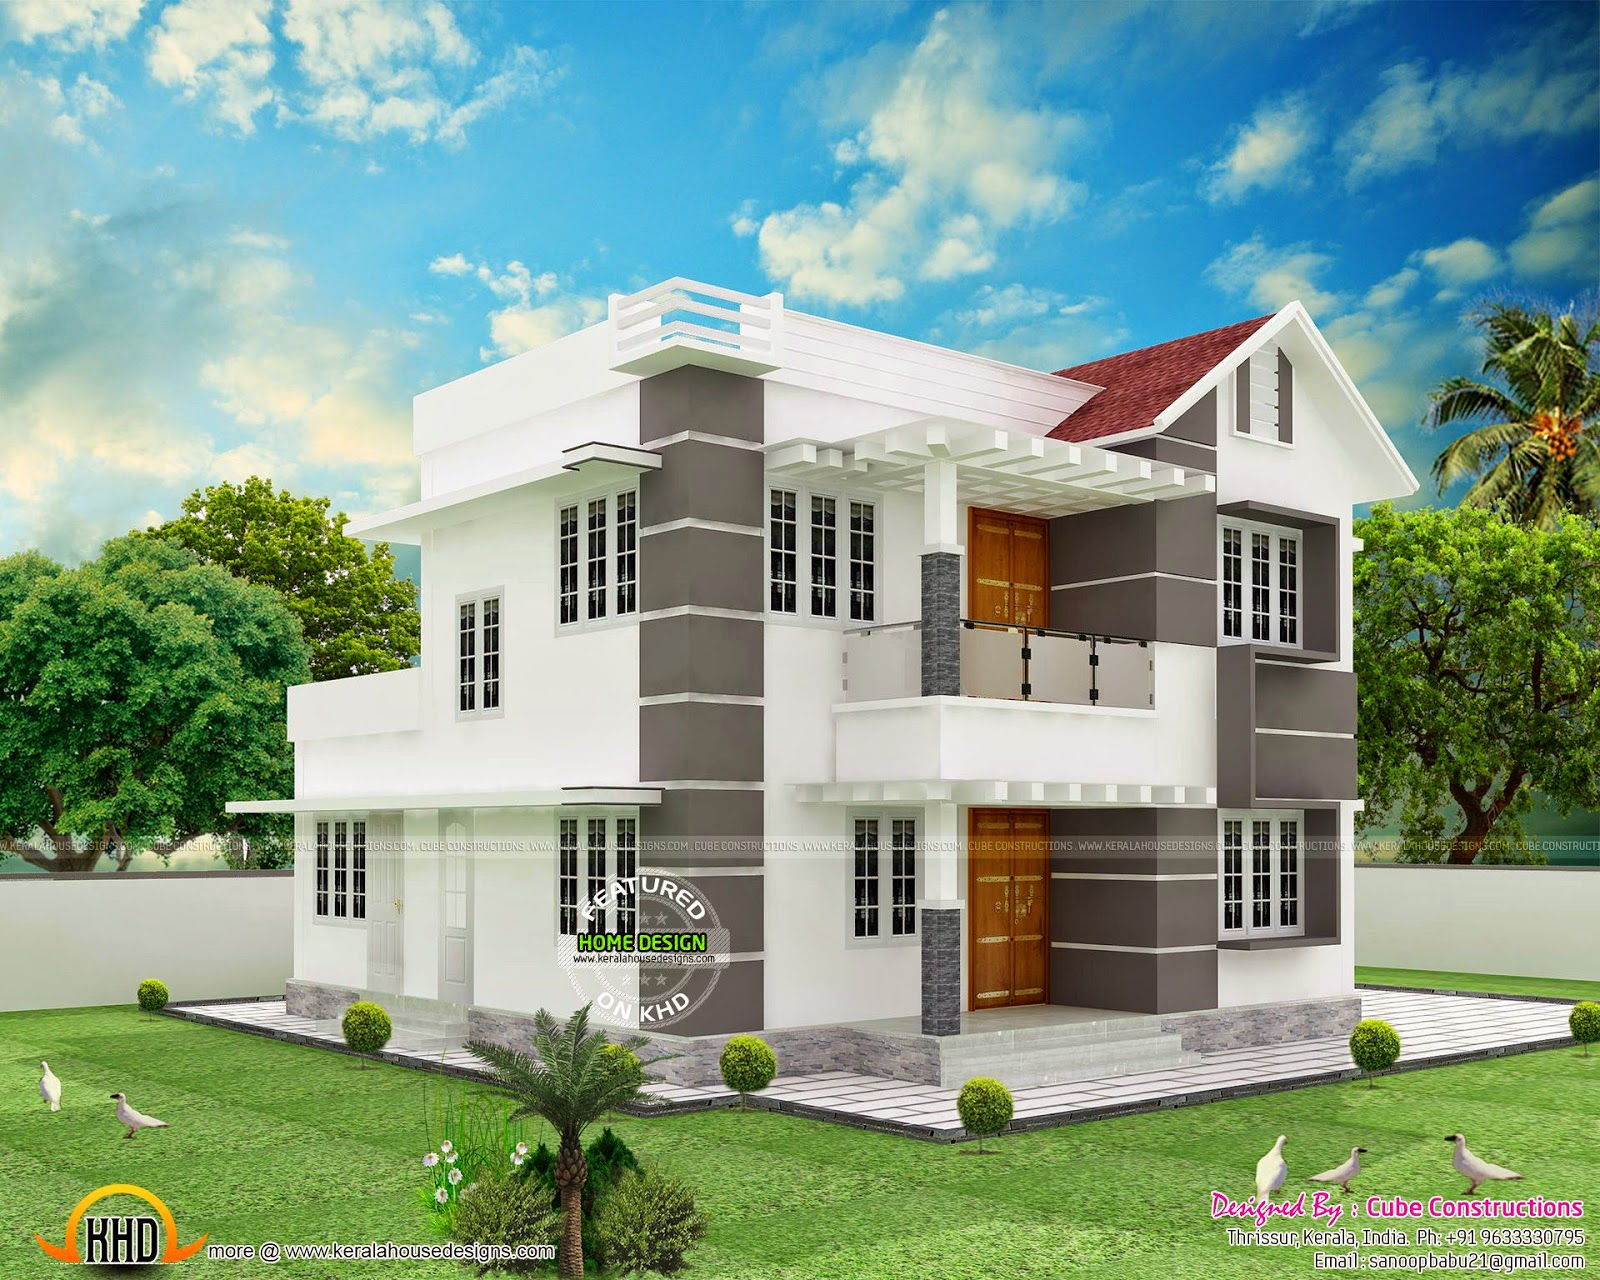 House design by cube constructions kerala home design Cube house plans